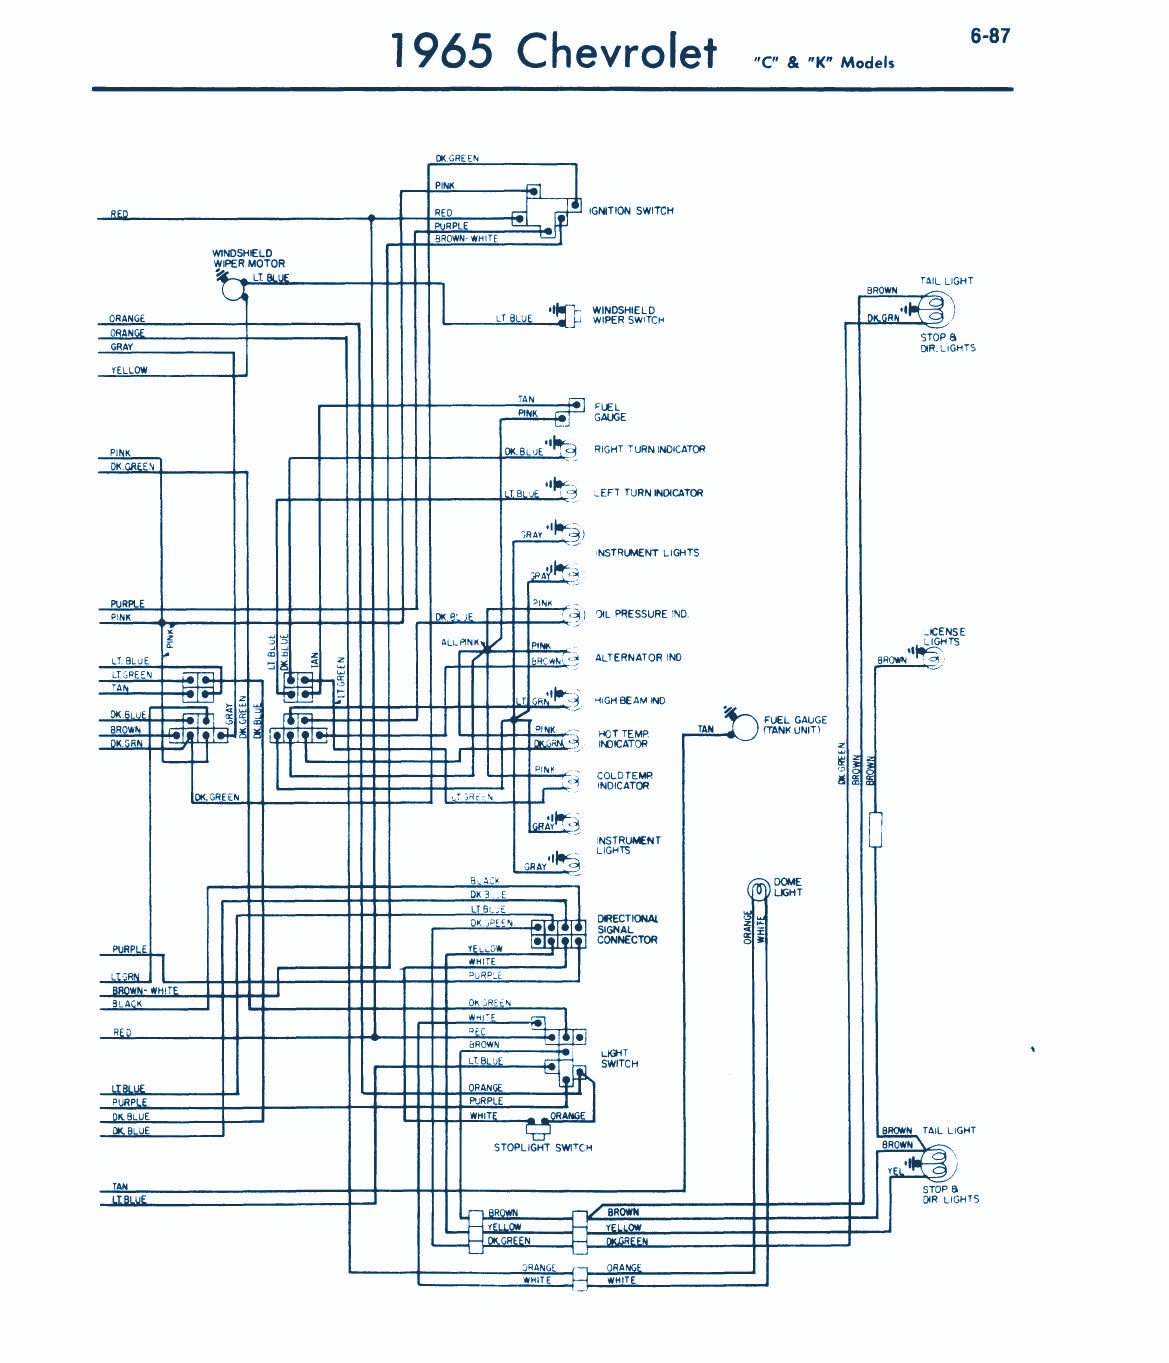 Wiring Diagram Likewise Along With 2000 Chevy Astro Van Wiring Diagram